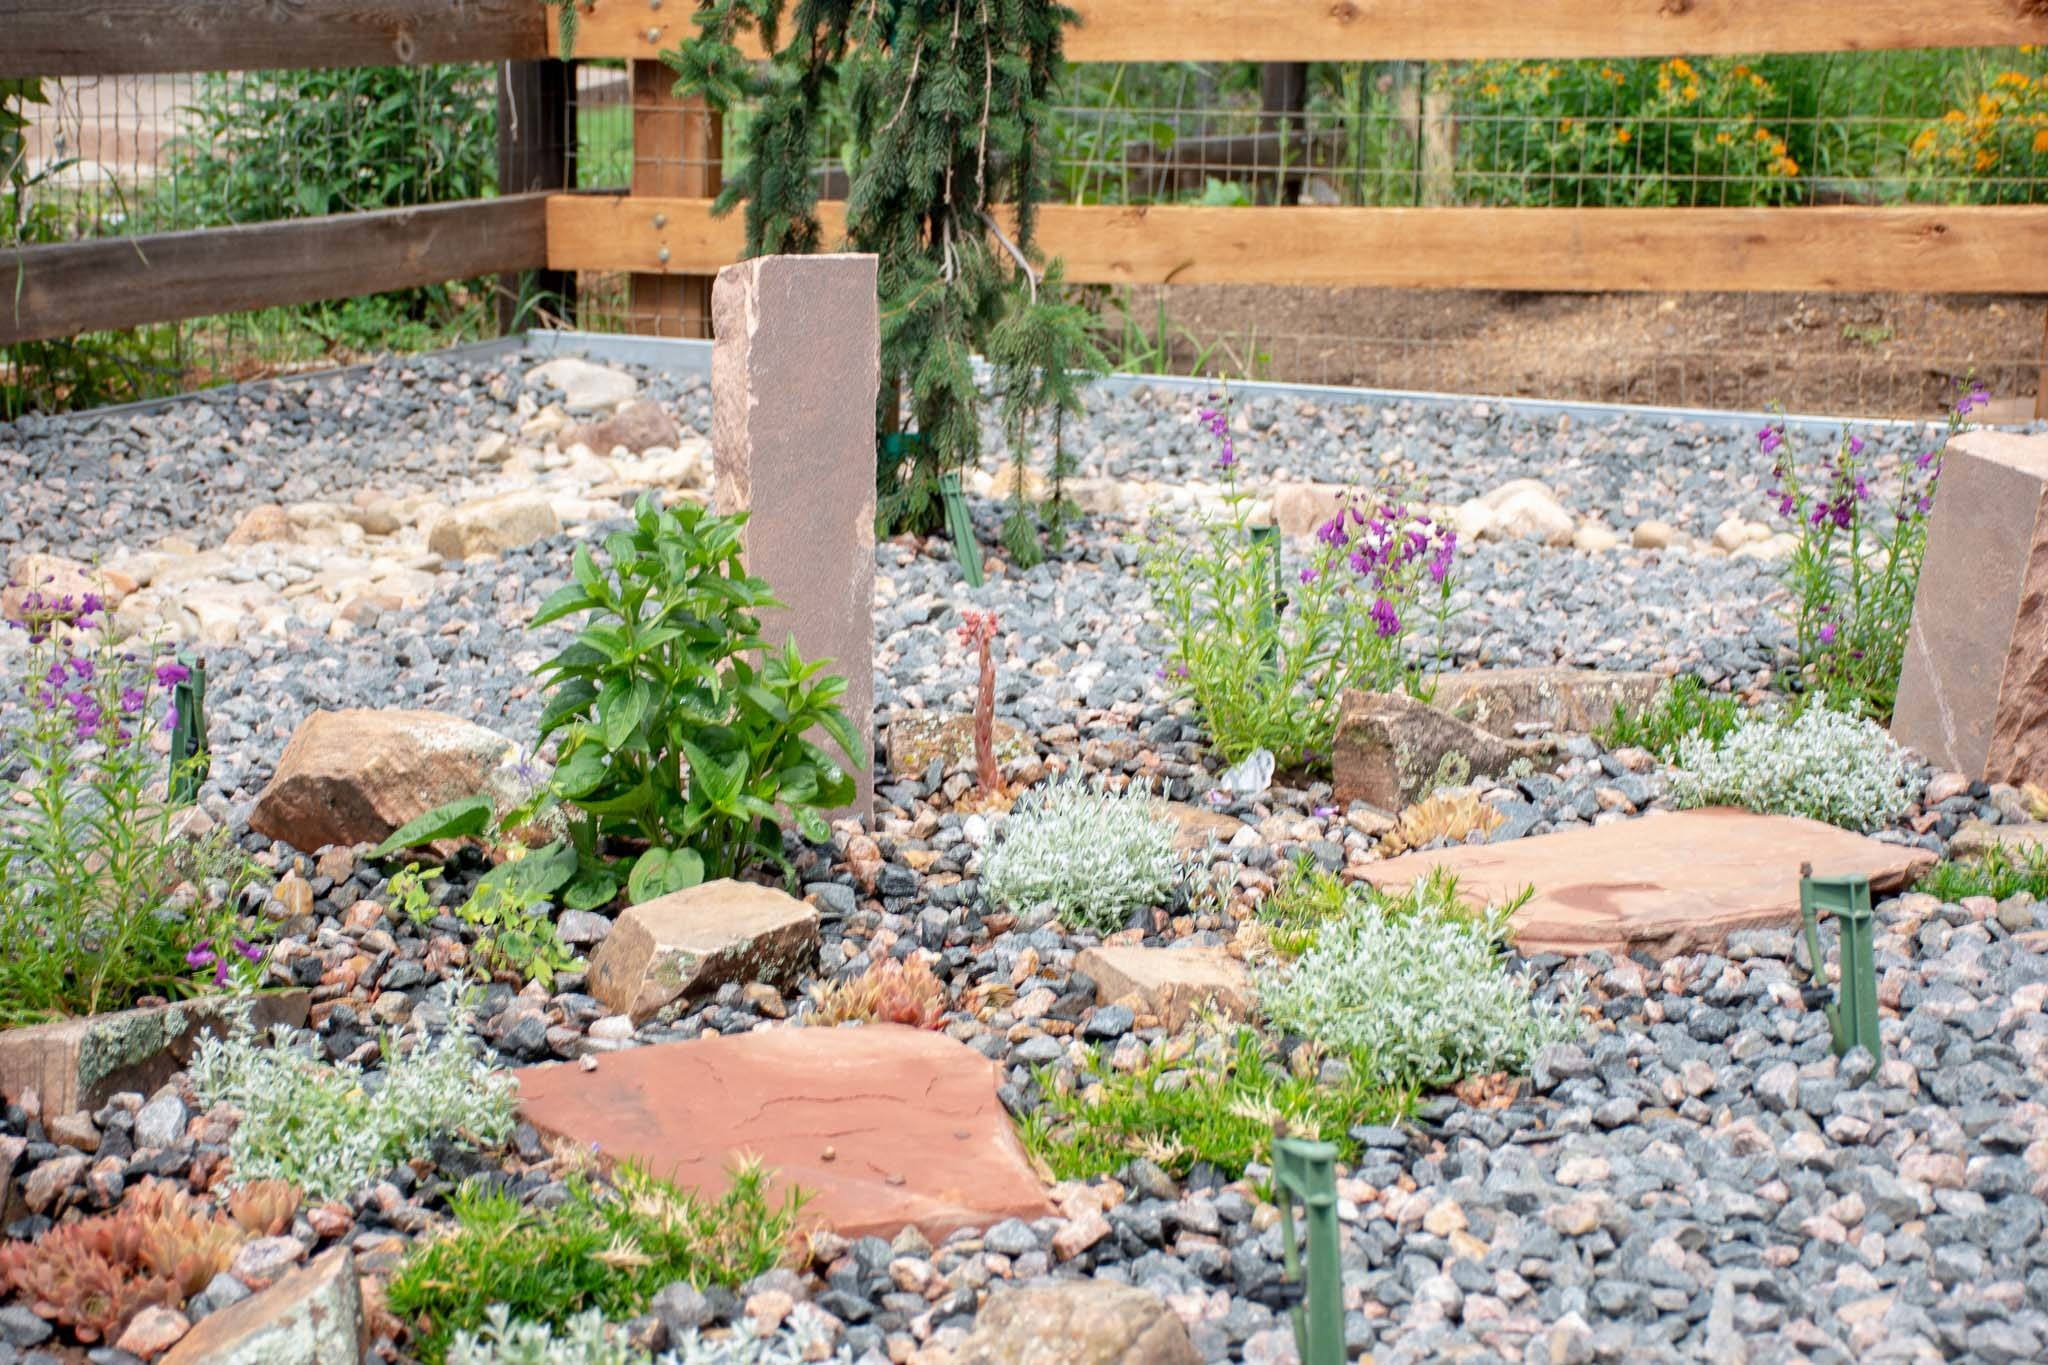 Close-up of Xeriscape/Natural landscaping in Lyons, CO 2019